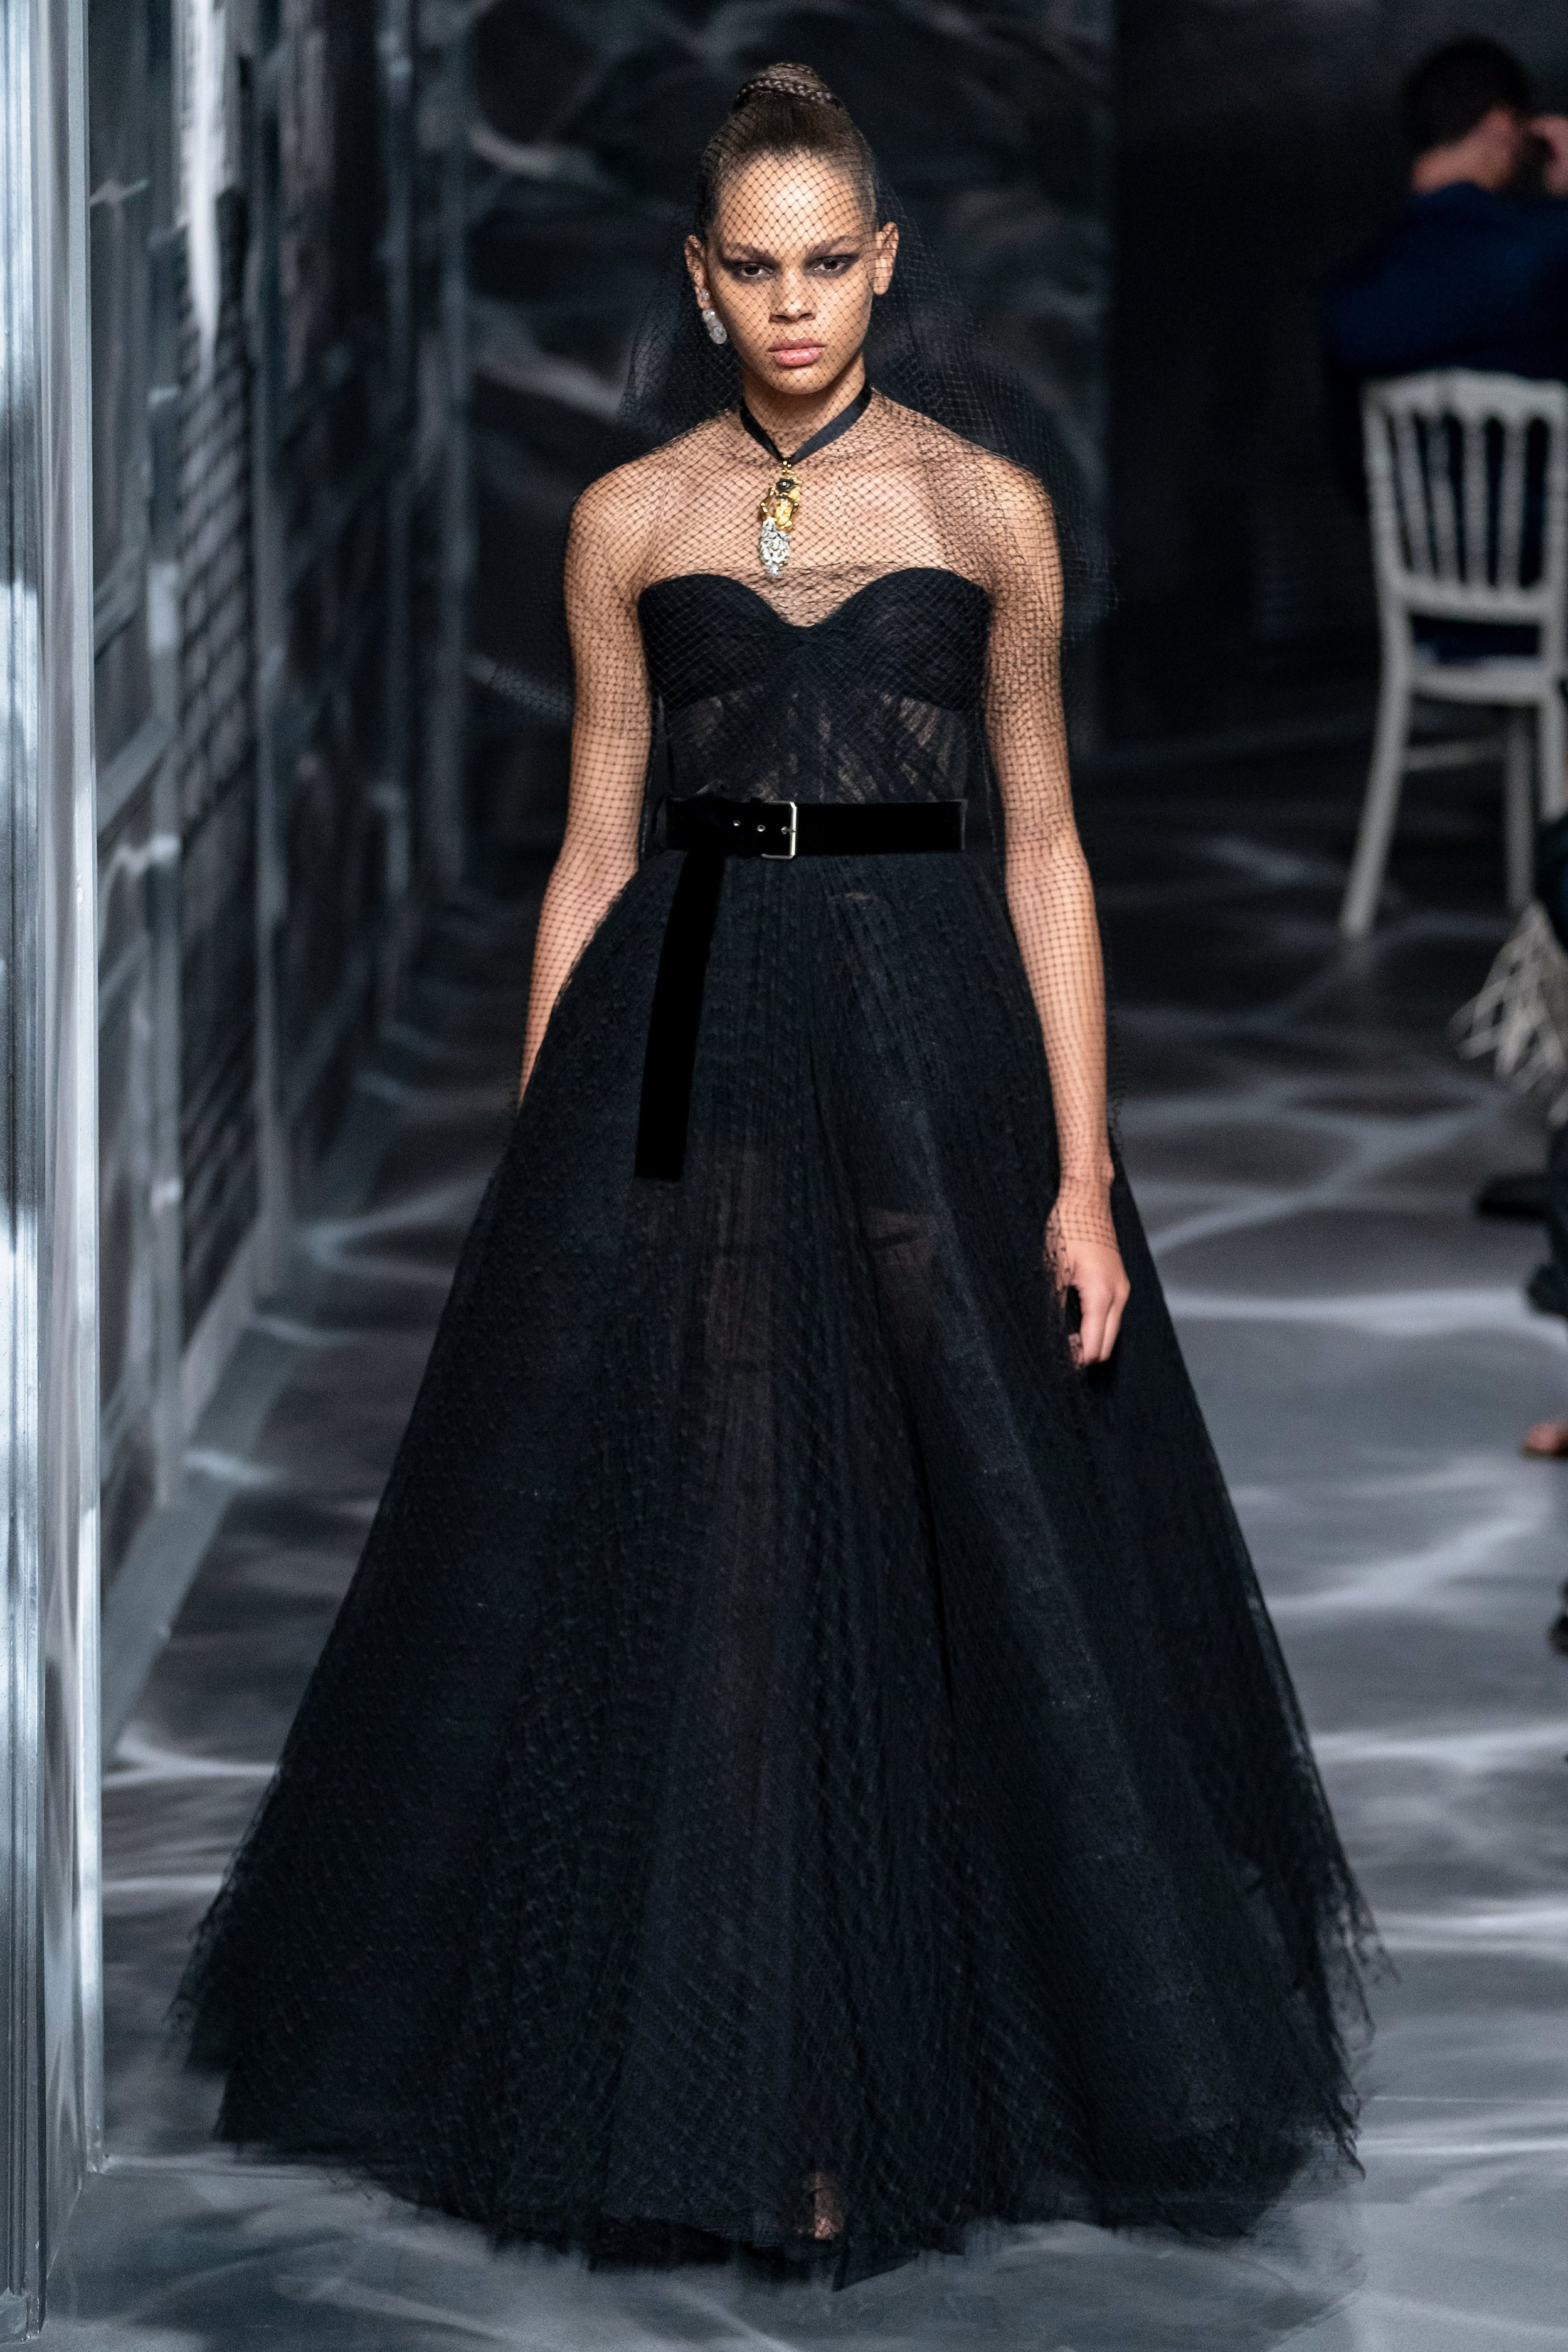 2/4 Christian Dior Fall Couture 19: Favorite Looks